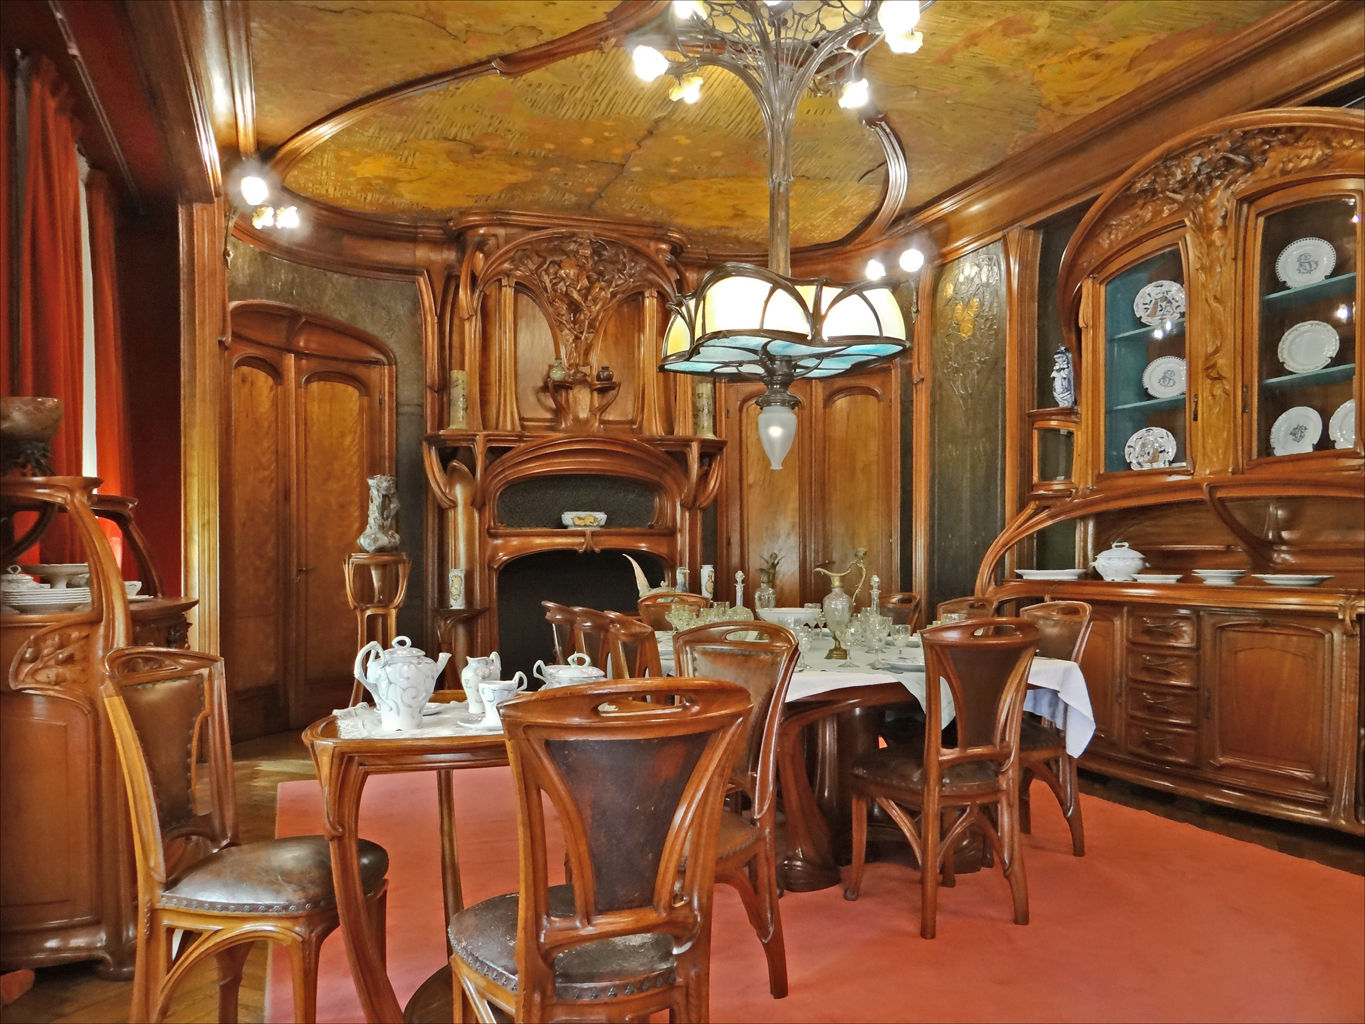 fichier salle manger art nouveau mus e de lecole de nancy 8029194773 jpg wikip dia. Black Bedroom Furniture Sets. Home Design Ideas